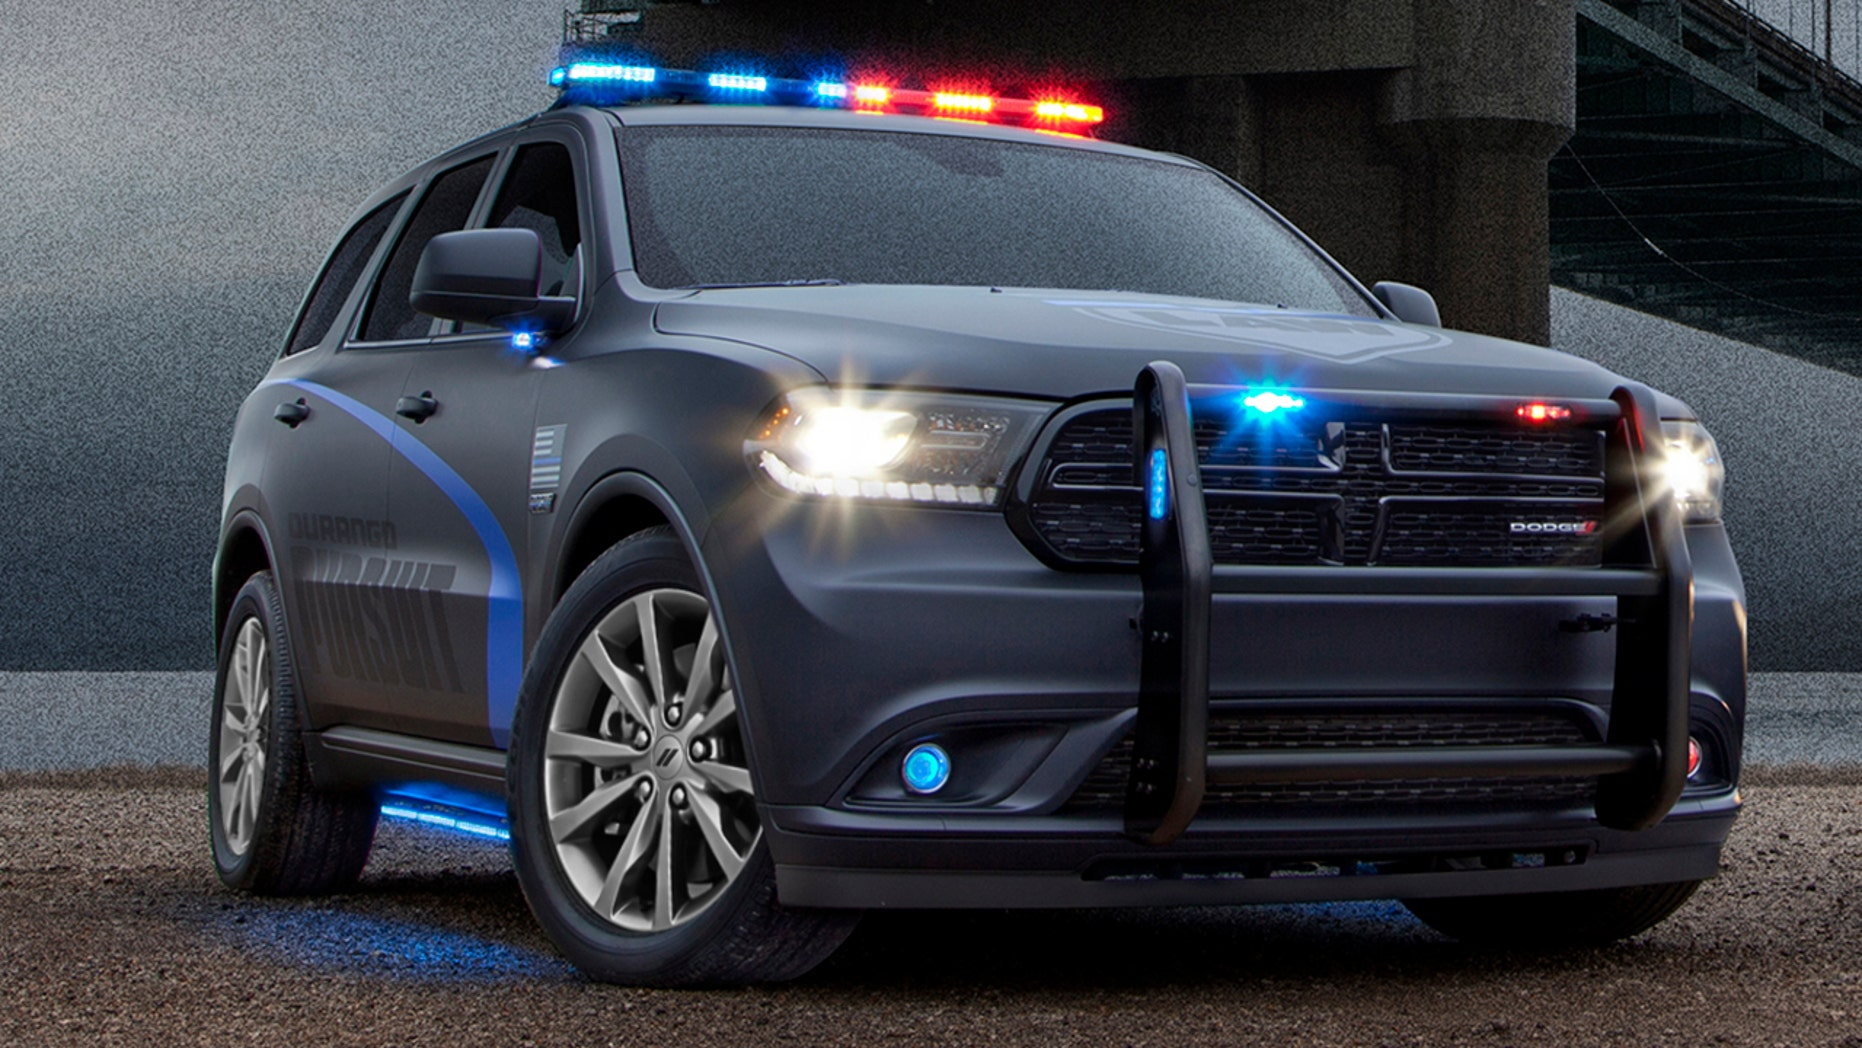 Dodge expands its police vehicle line-up for 2018 with the new Dodge Durango Pursuit V8 AWD, which joins the Charger Pursuit – the top-selling police sedan in the segment.